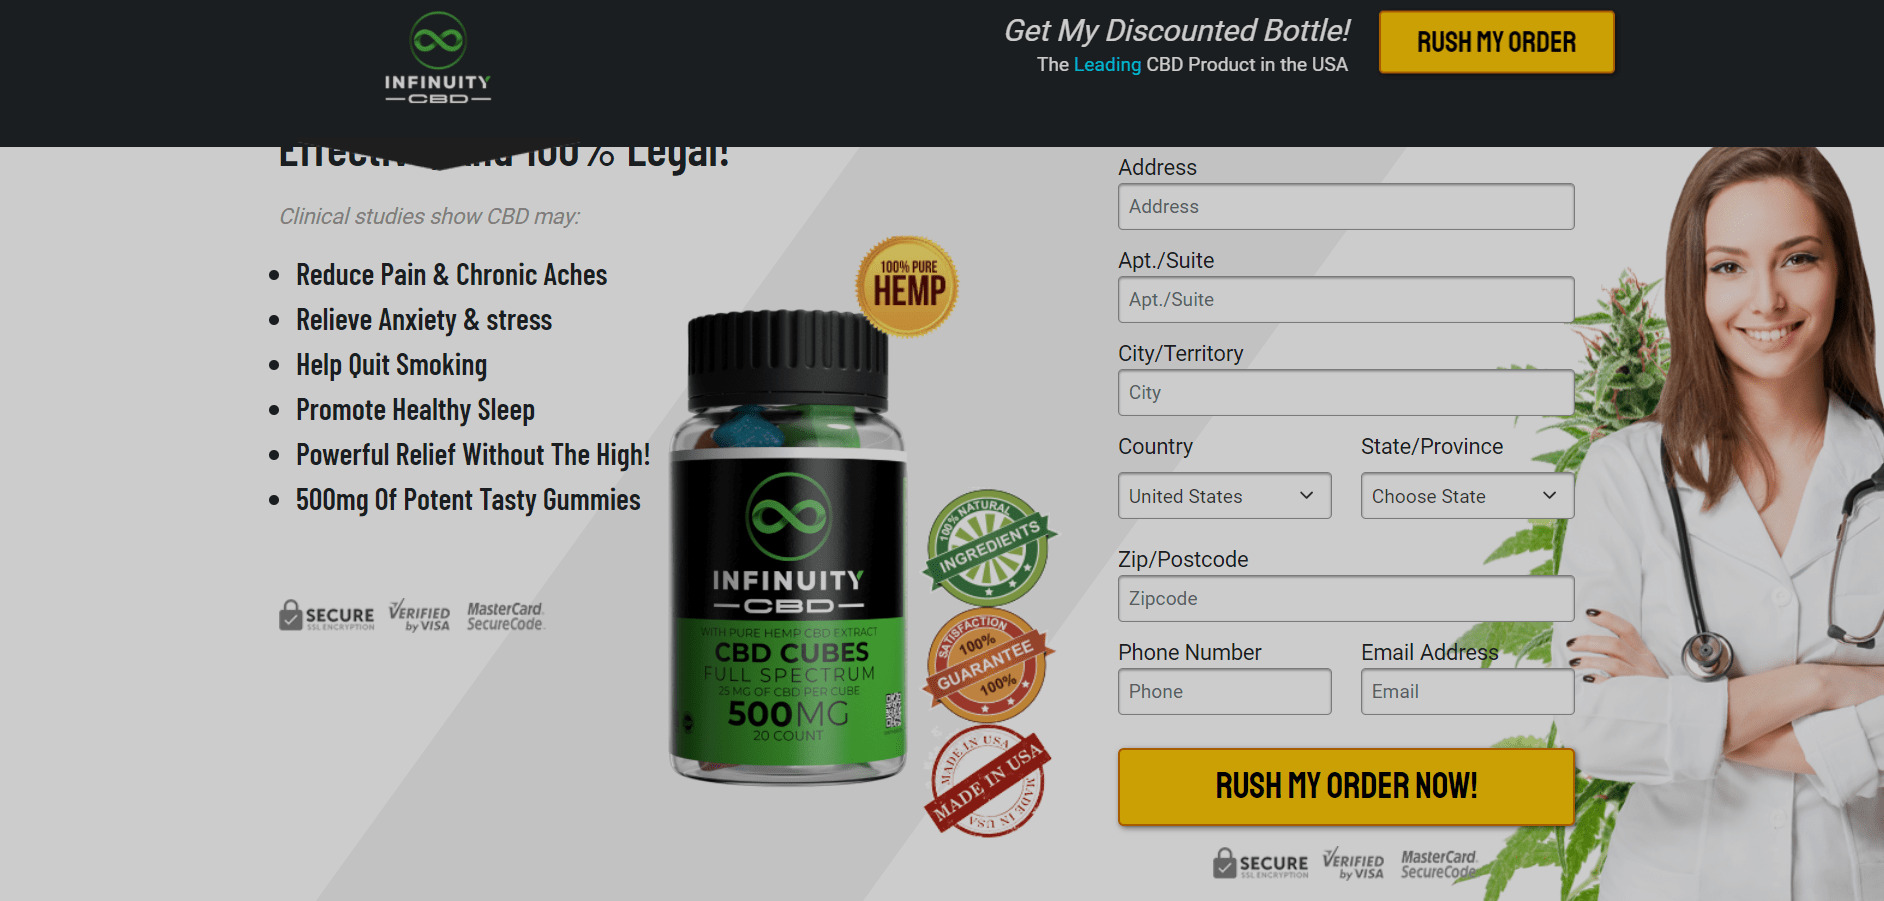 Infinuity CBD Gummies Reviews 2021 - Does it Really Work?